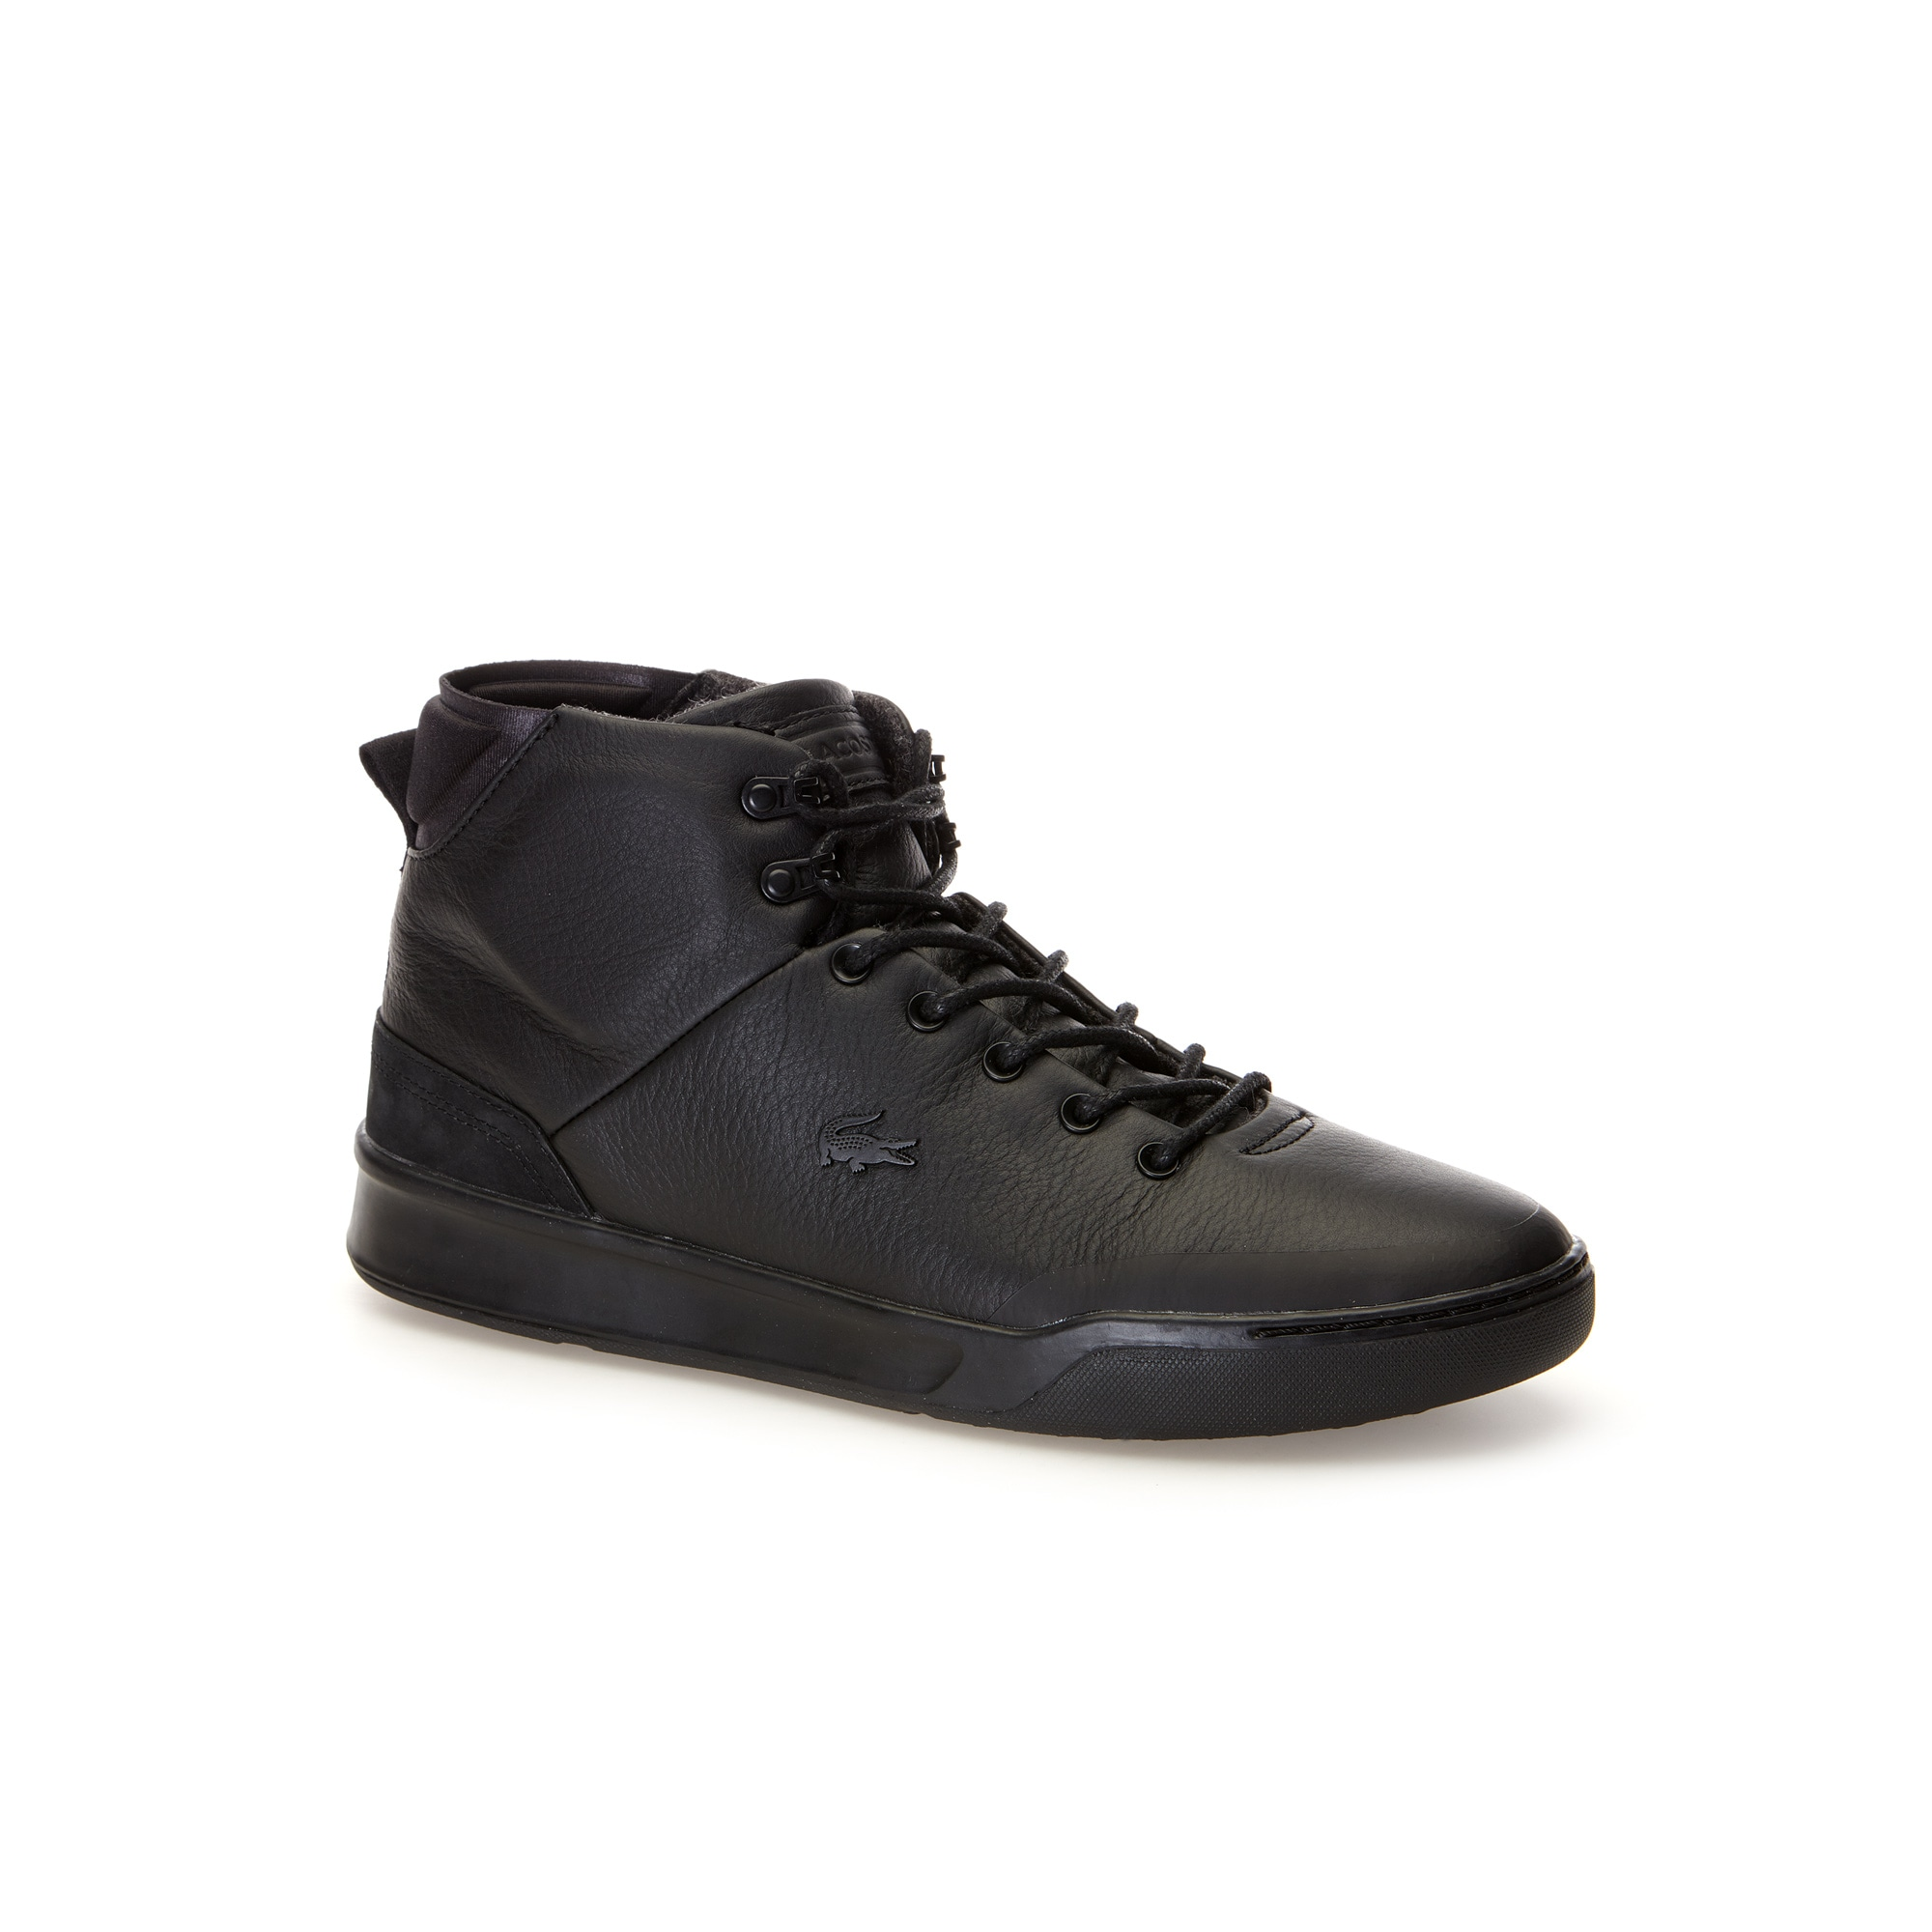 Men's Explorateur Classic Black Tumbled High-top Leather Trainers